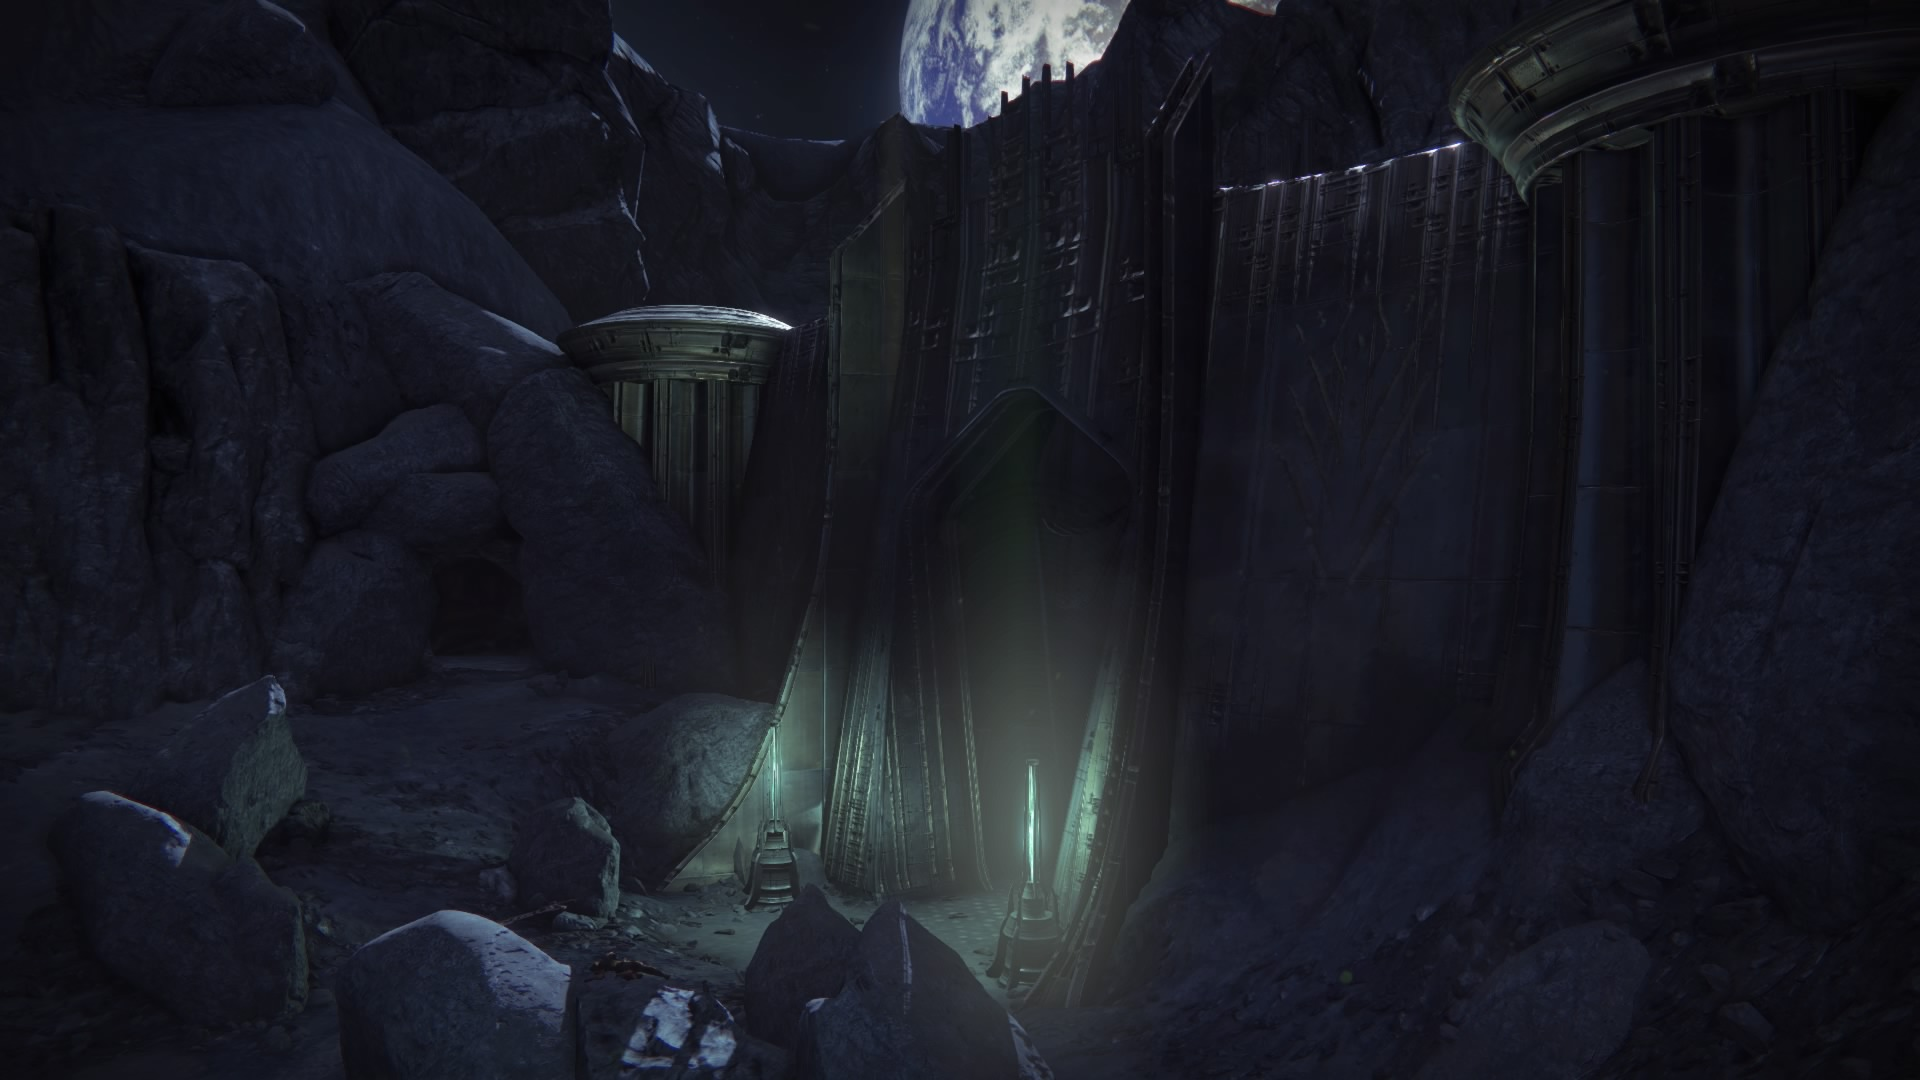 destiny moon temple of crota에 대한 이미지 검색결과